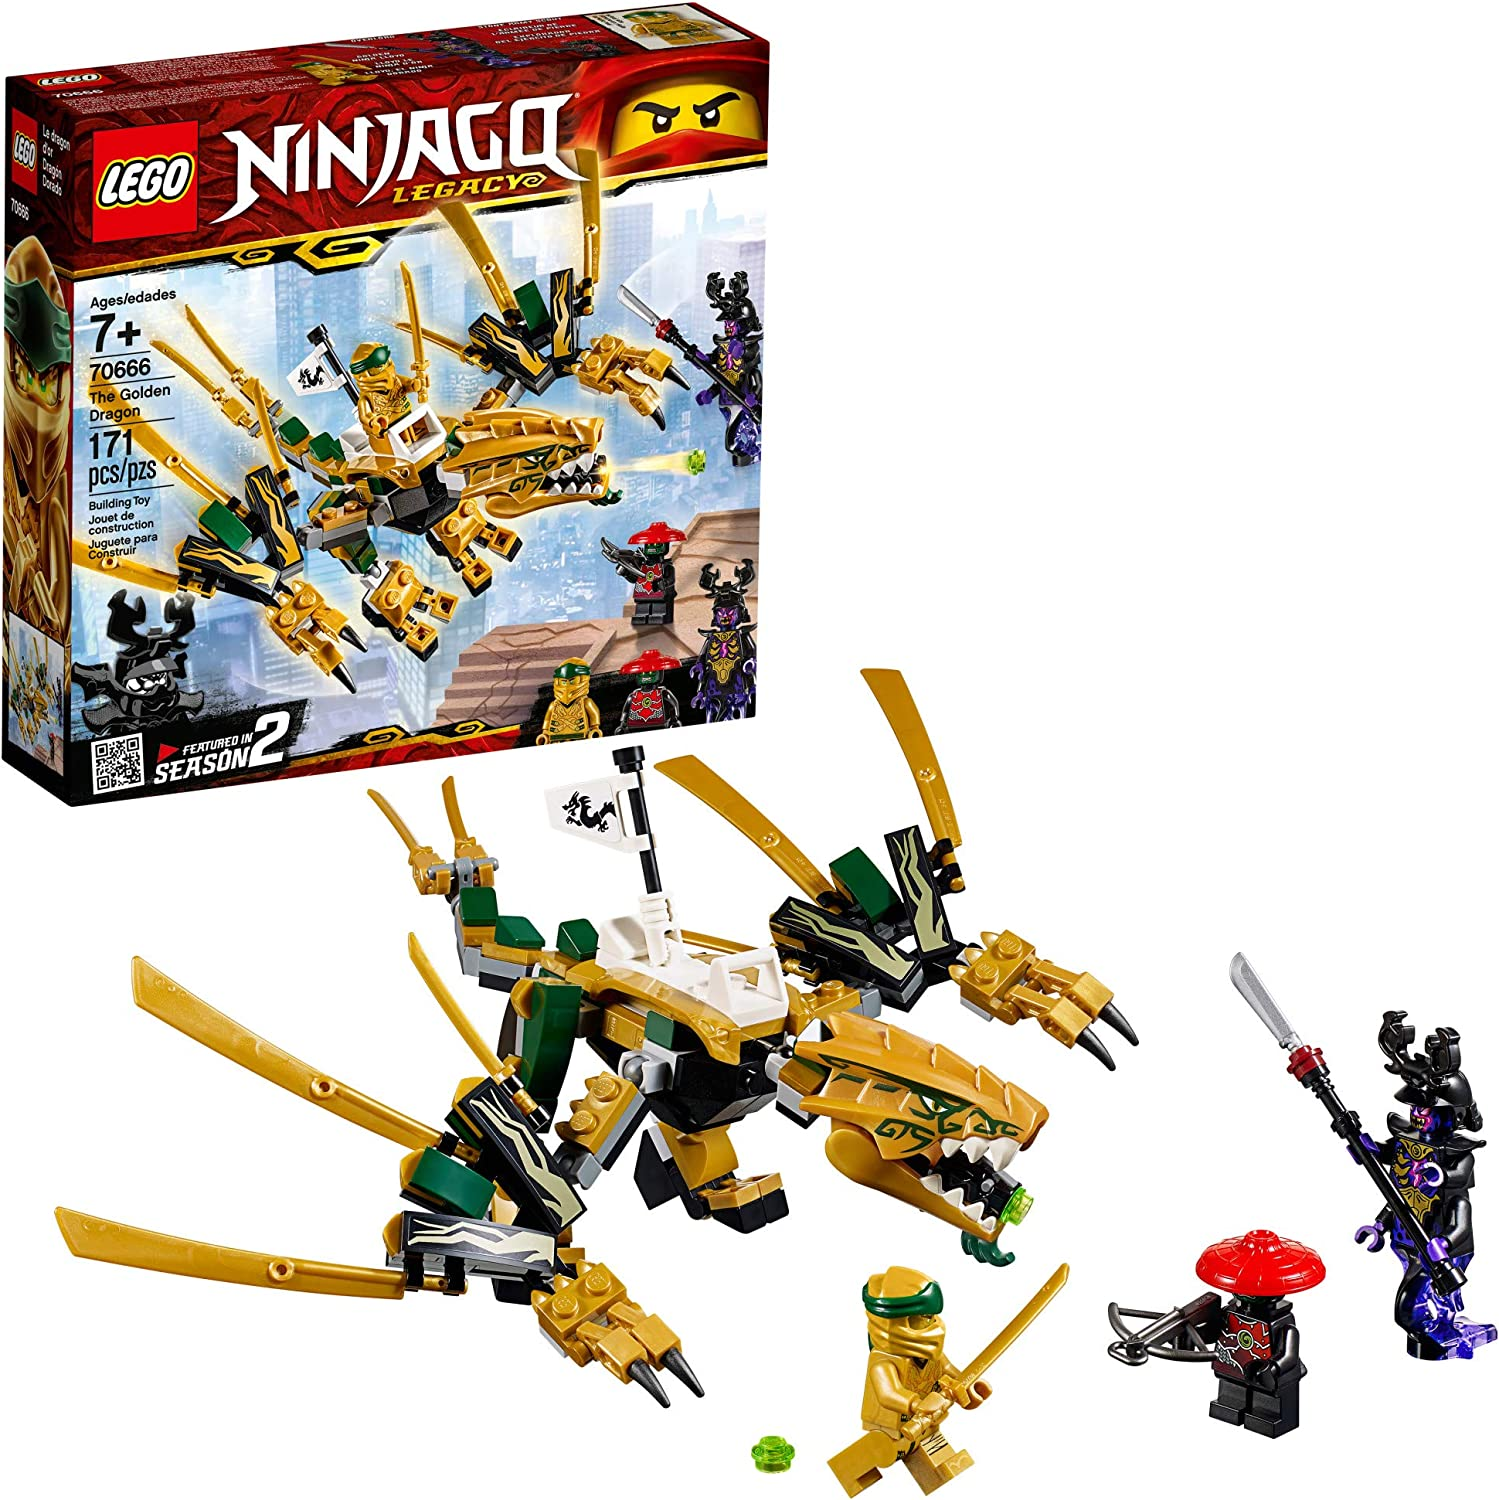 Lloyd ninjago gold dragon where is the safest place to inject steroids